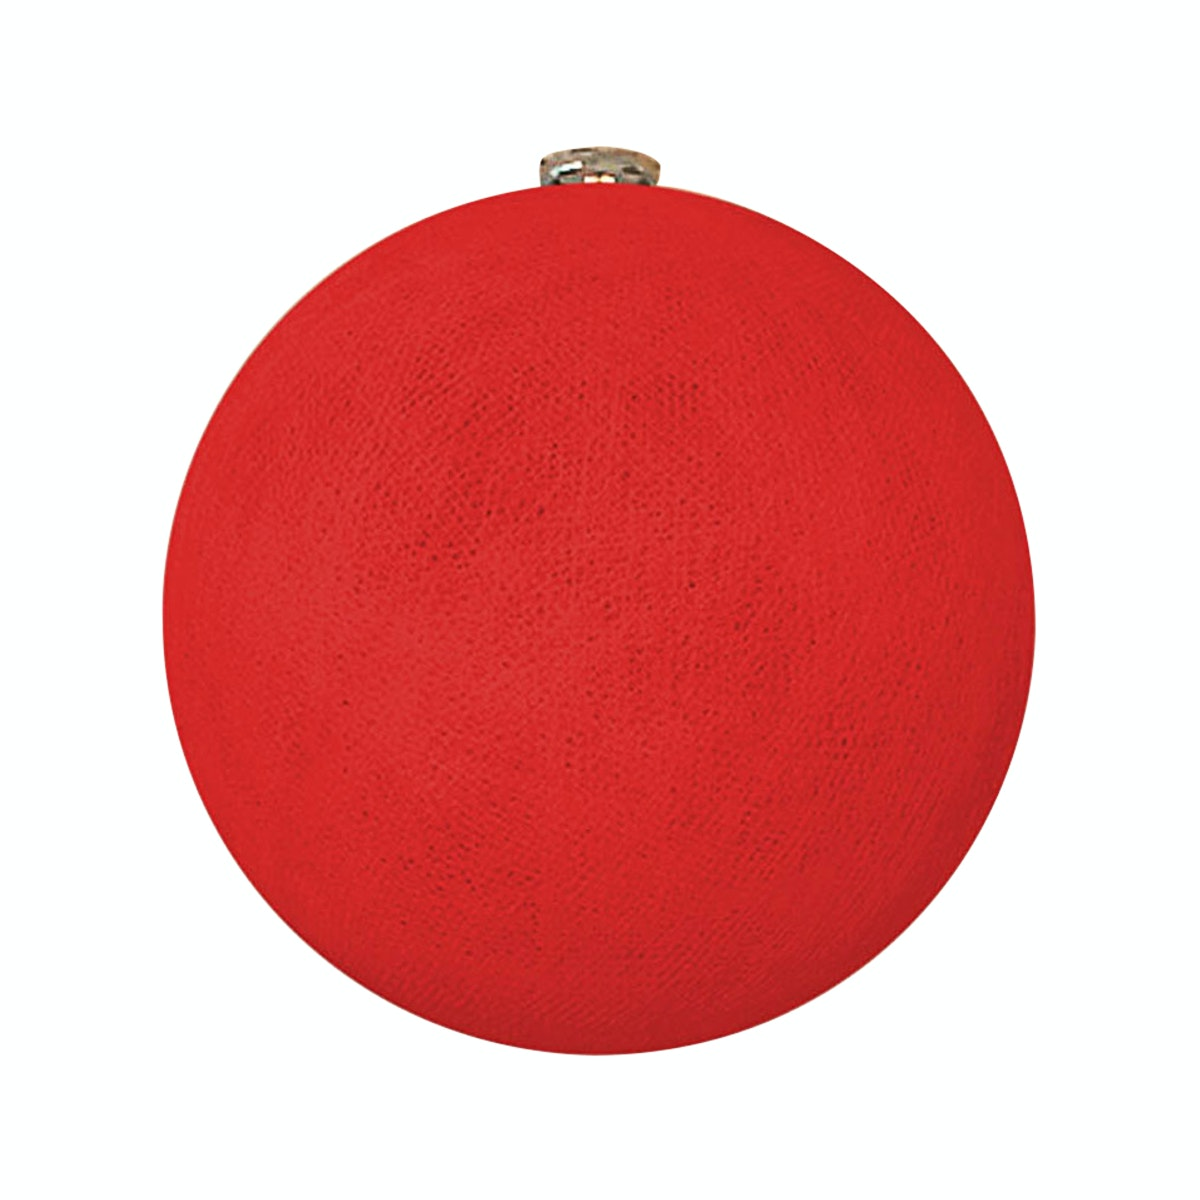 "Lightcraft Indonesia Big Cotton Ball 10"" Red"